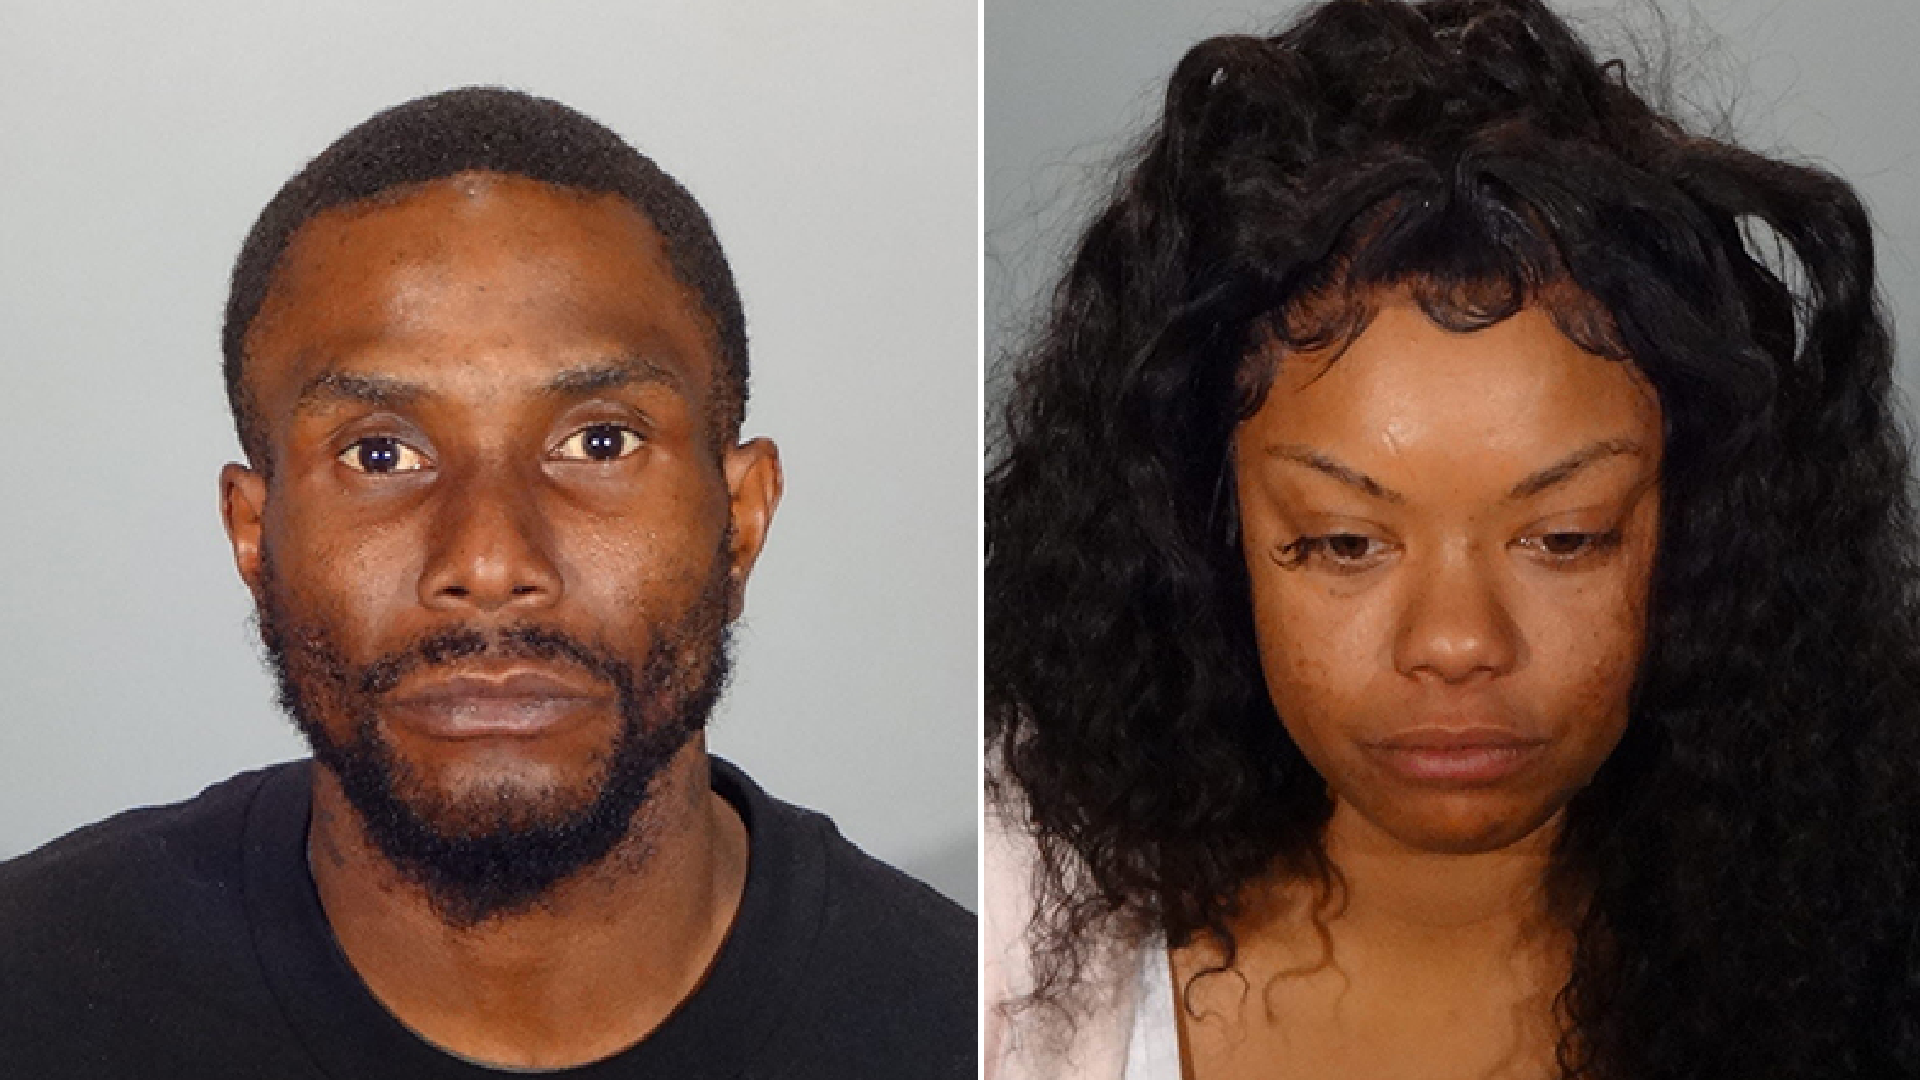 Stephan Morgan and Zenia West seen in undated photos shared by the Glendale Police Department on Dec.1, 2020.